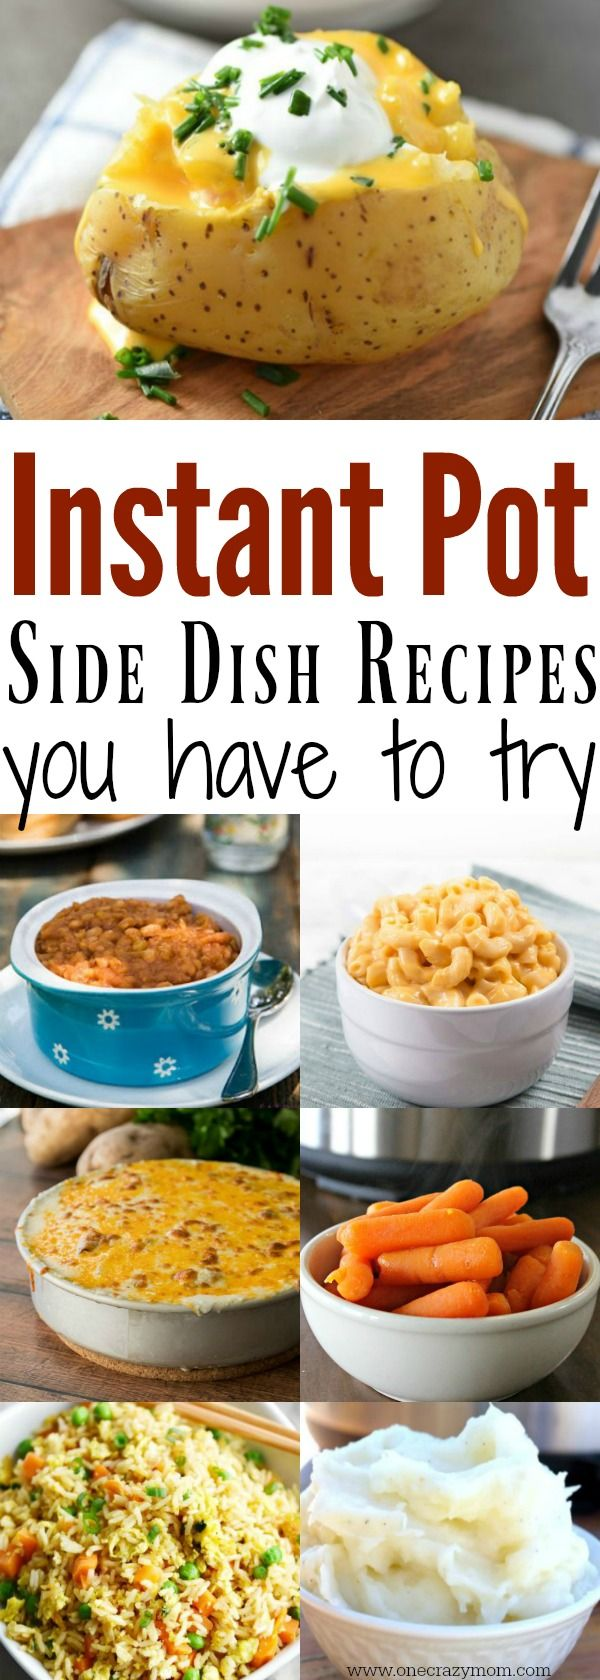 Easy Instant Pot Side Dish Recipes you will love. Try these easy pressure cooker side dish recipes. 15 easy side dish recipes. Instant pot side dishes your family will love.